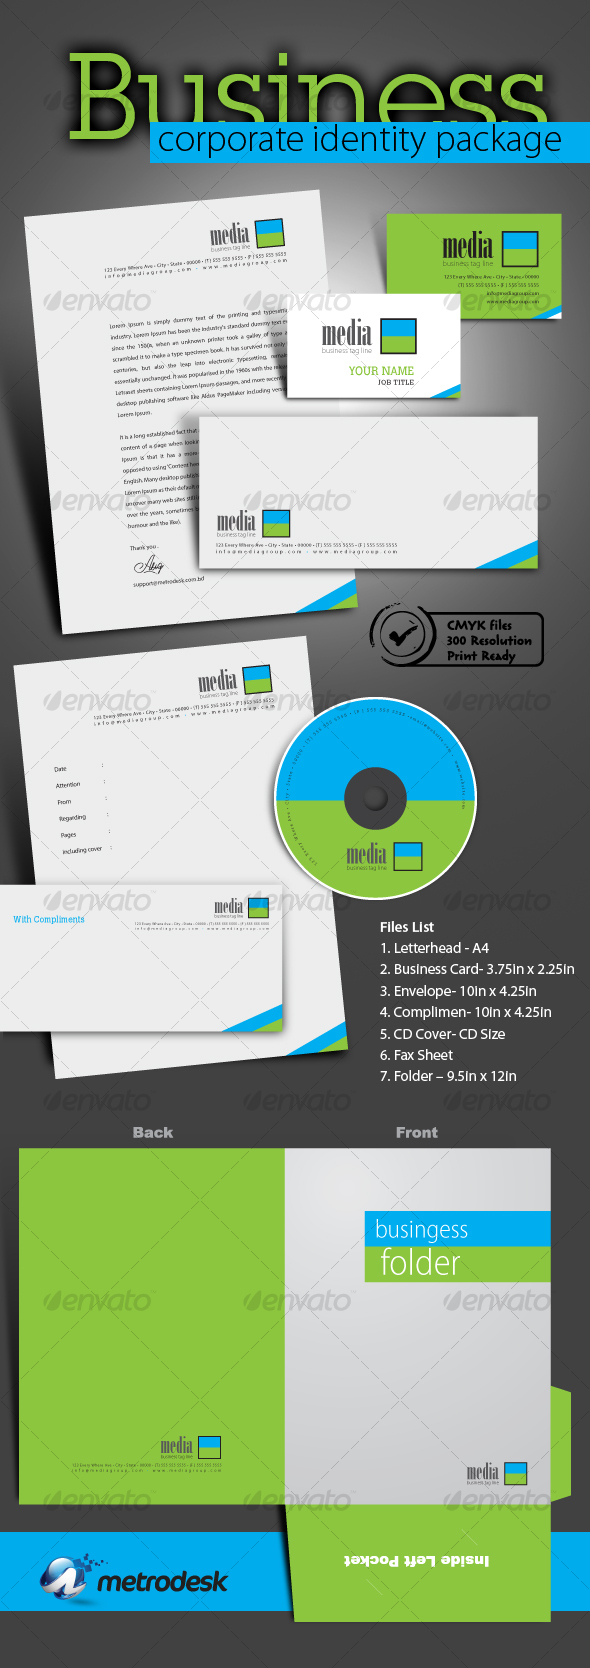 GraphicRiver High quality print ready corporate identity 7 pack 89673